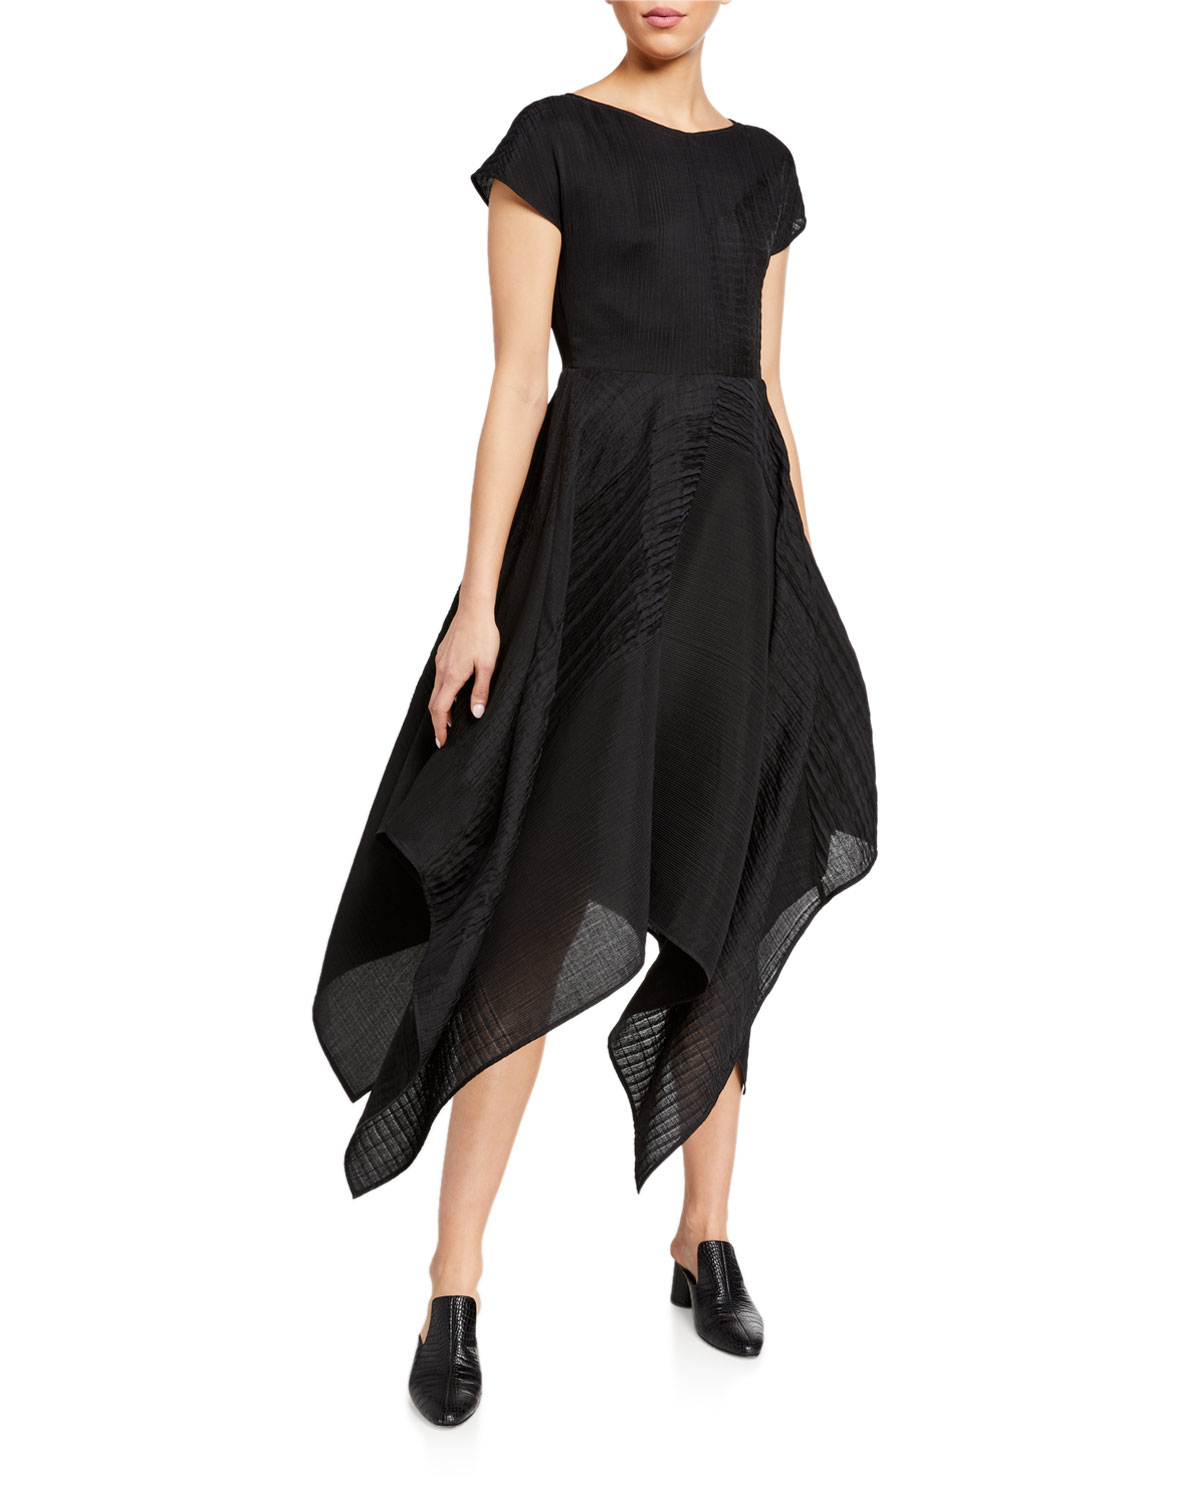 Co Short-Sleeve Asymmetric Dress